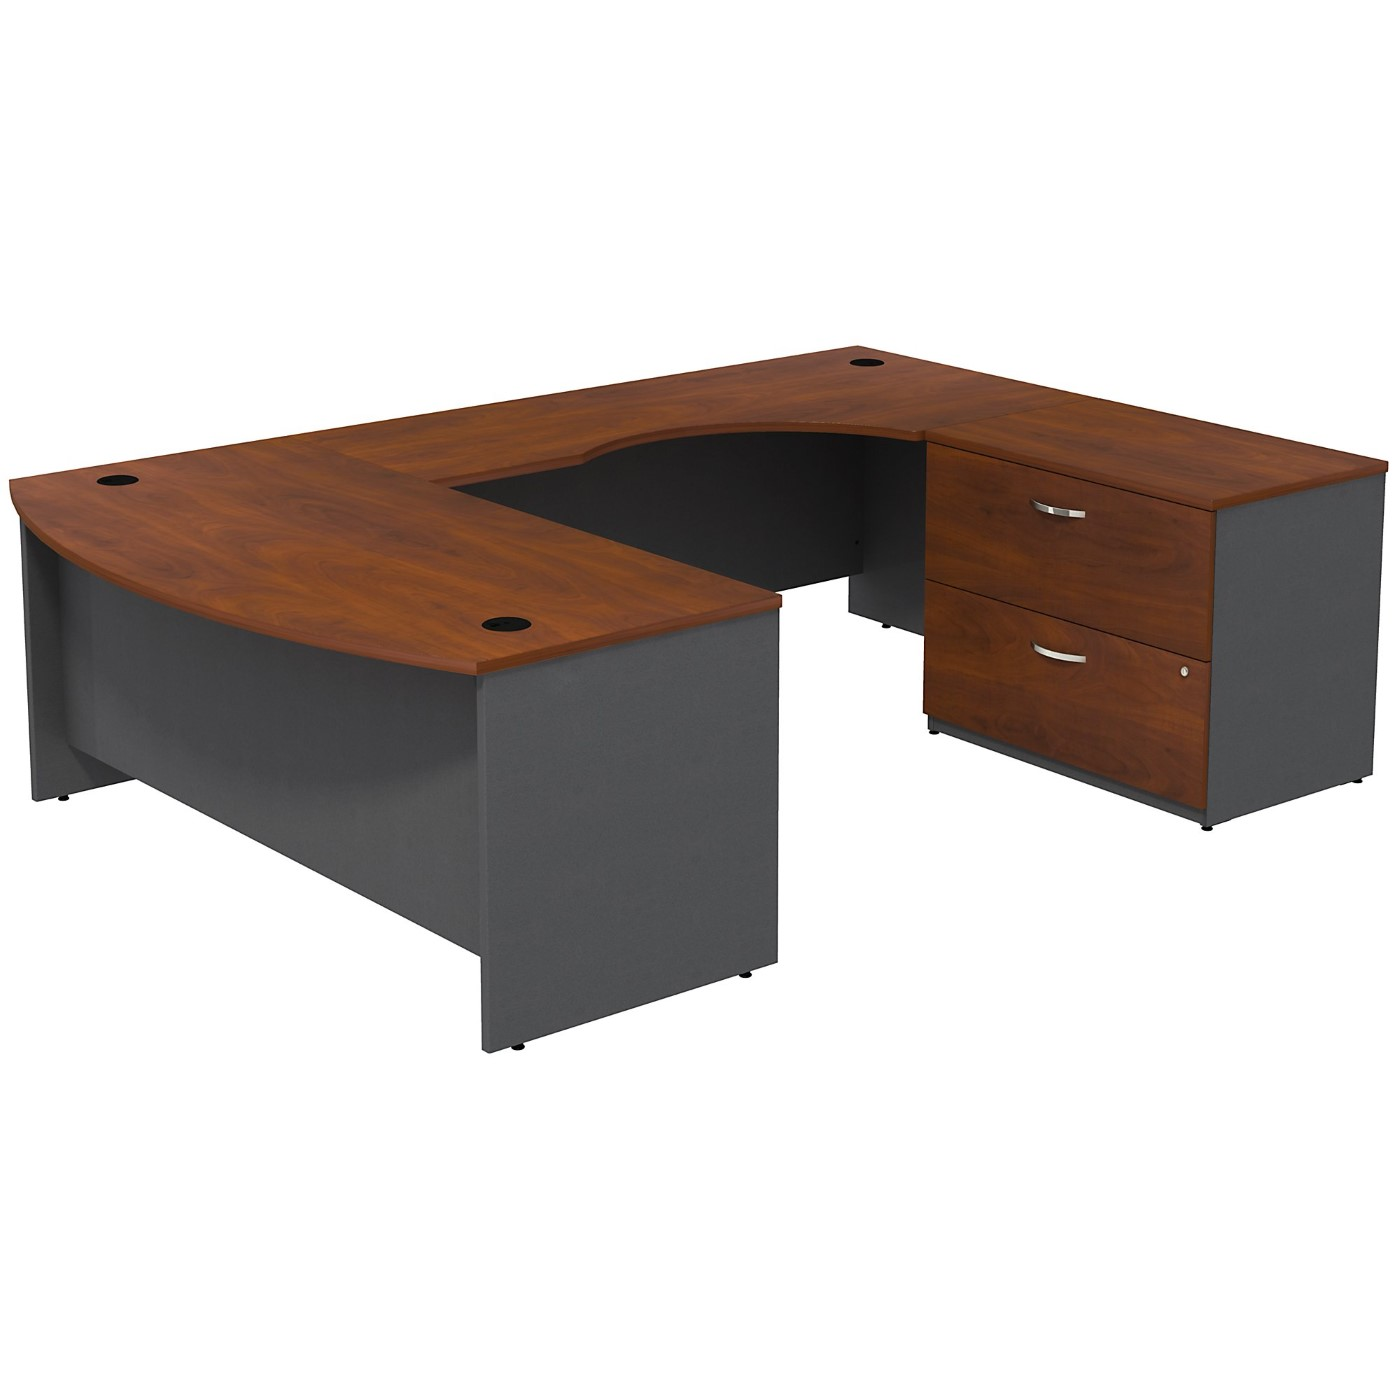 BUSH BUSINESS FURNITURE SERIES C BOW FRONT RIGHT HANDED U SHAPED DESK WITH 2 DRAWER LATERAL FILE CABINET. FREE SHIPPING